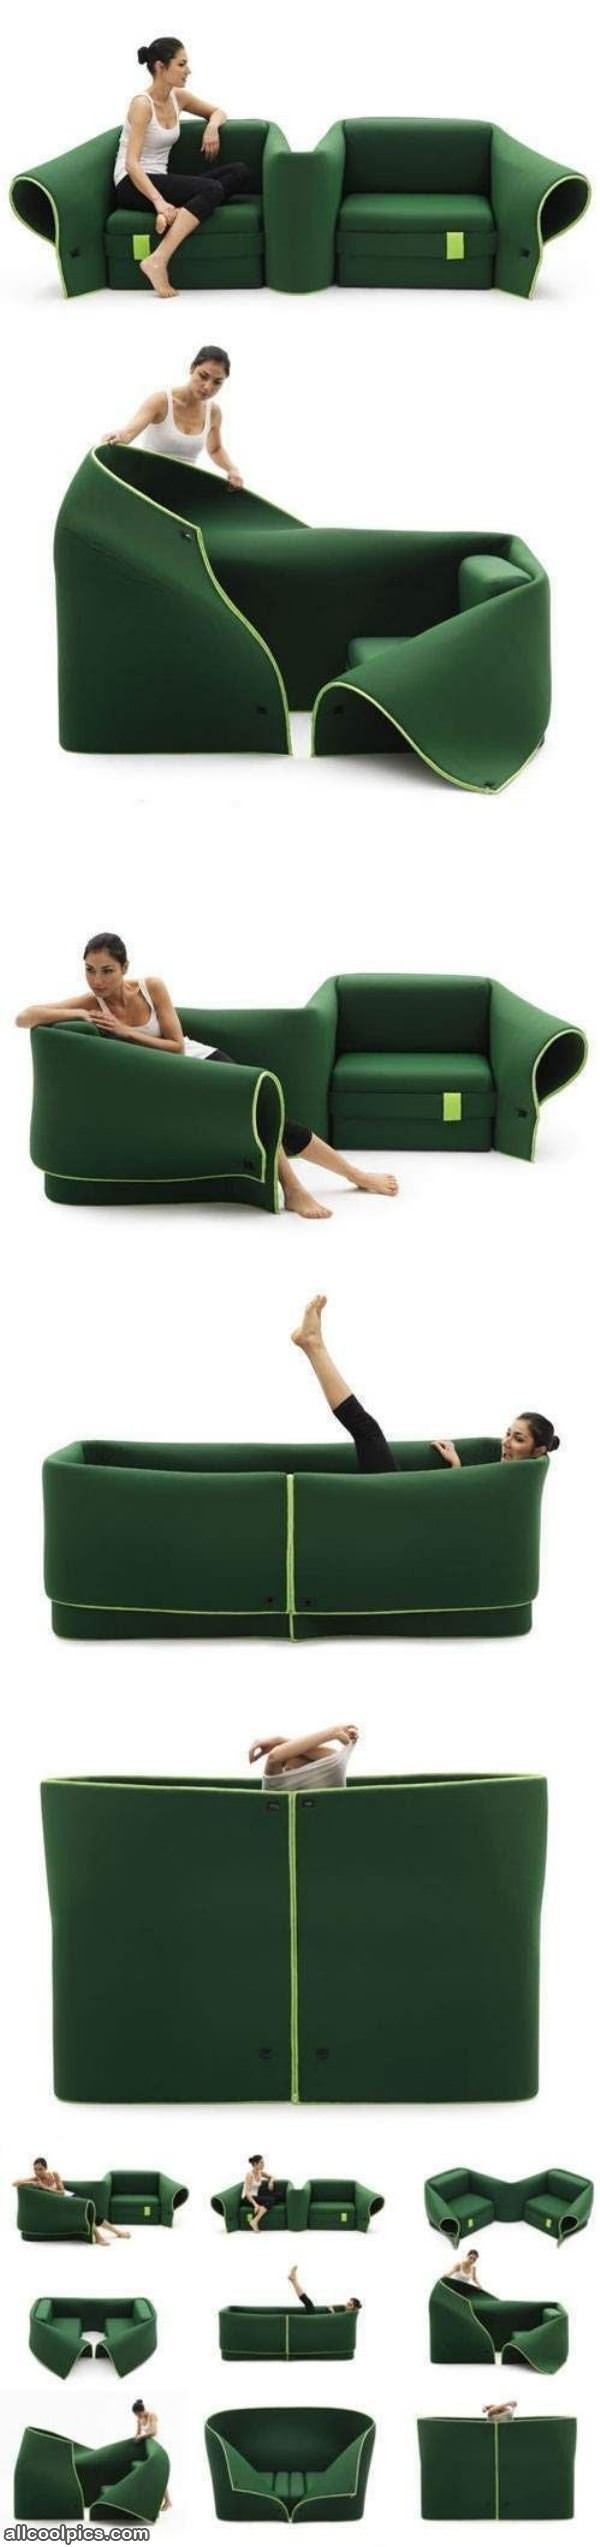 Cool Adjustable Couch